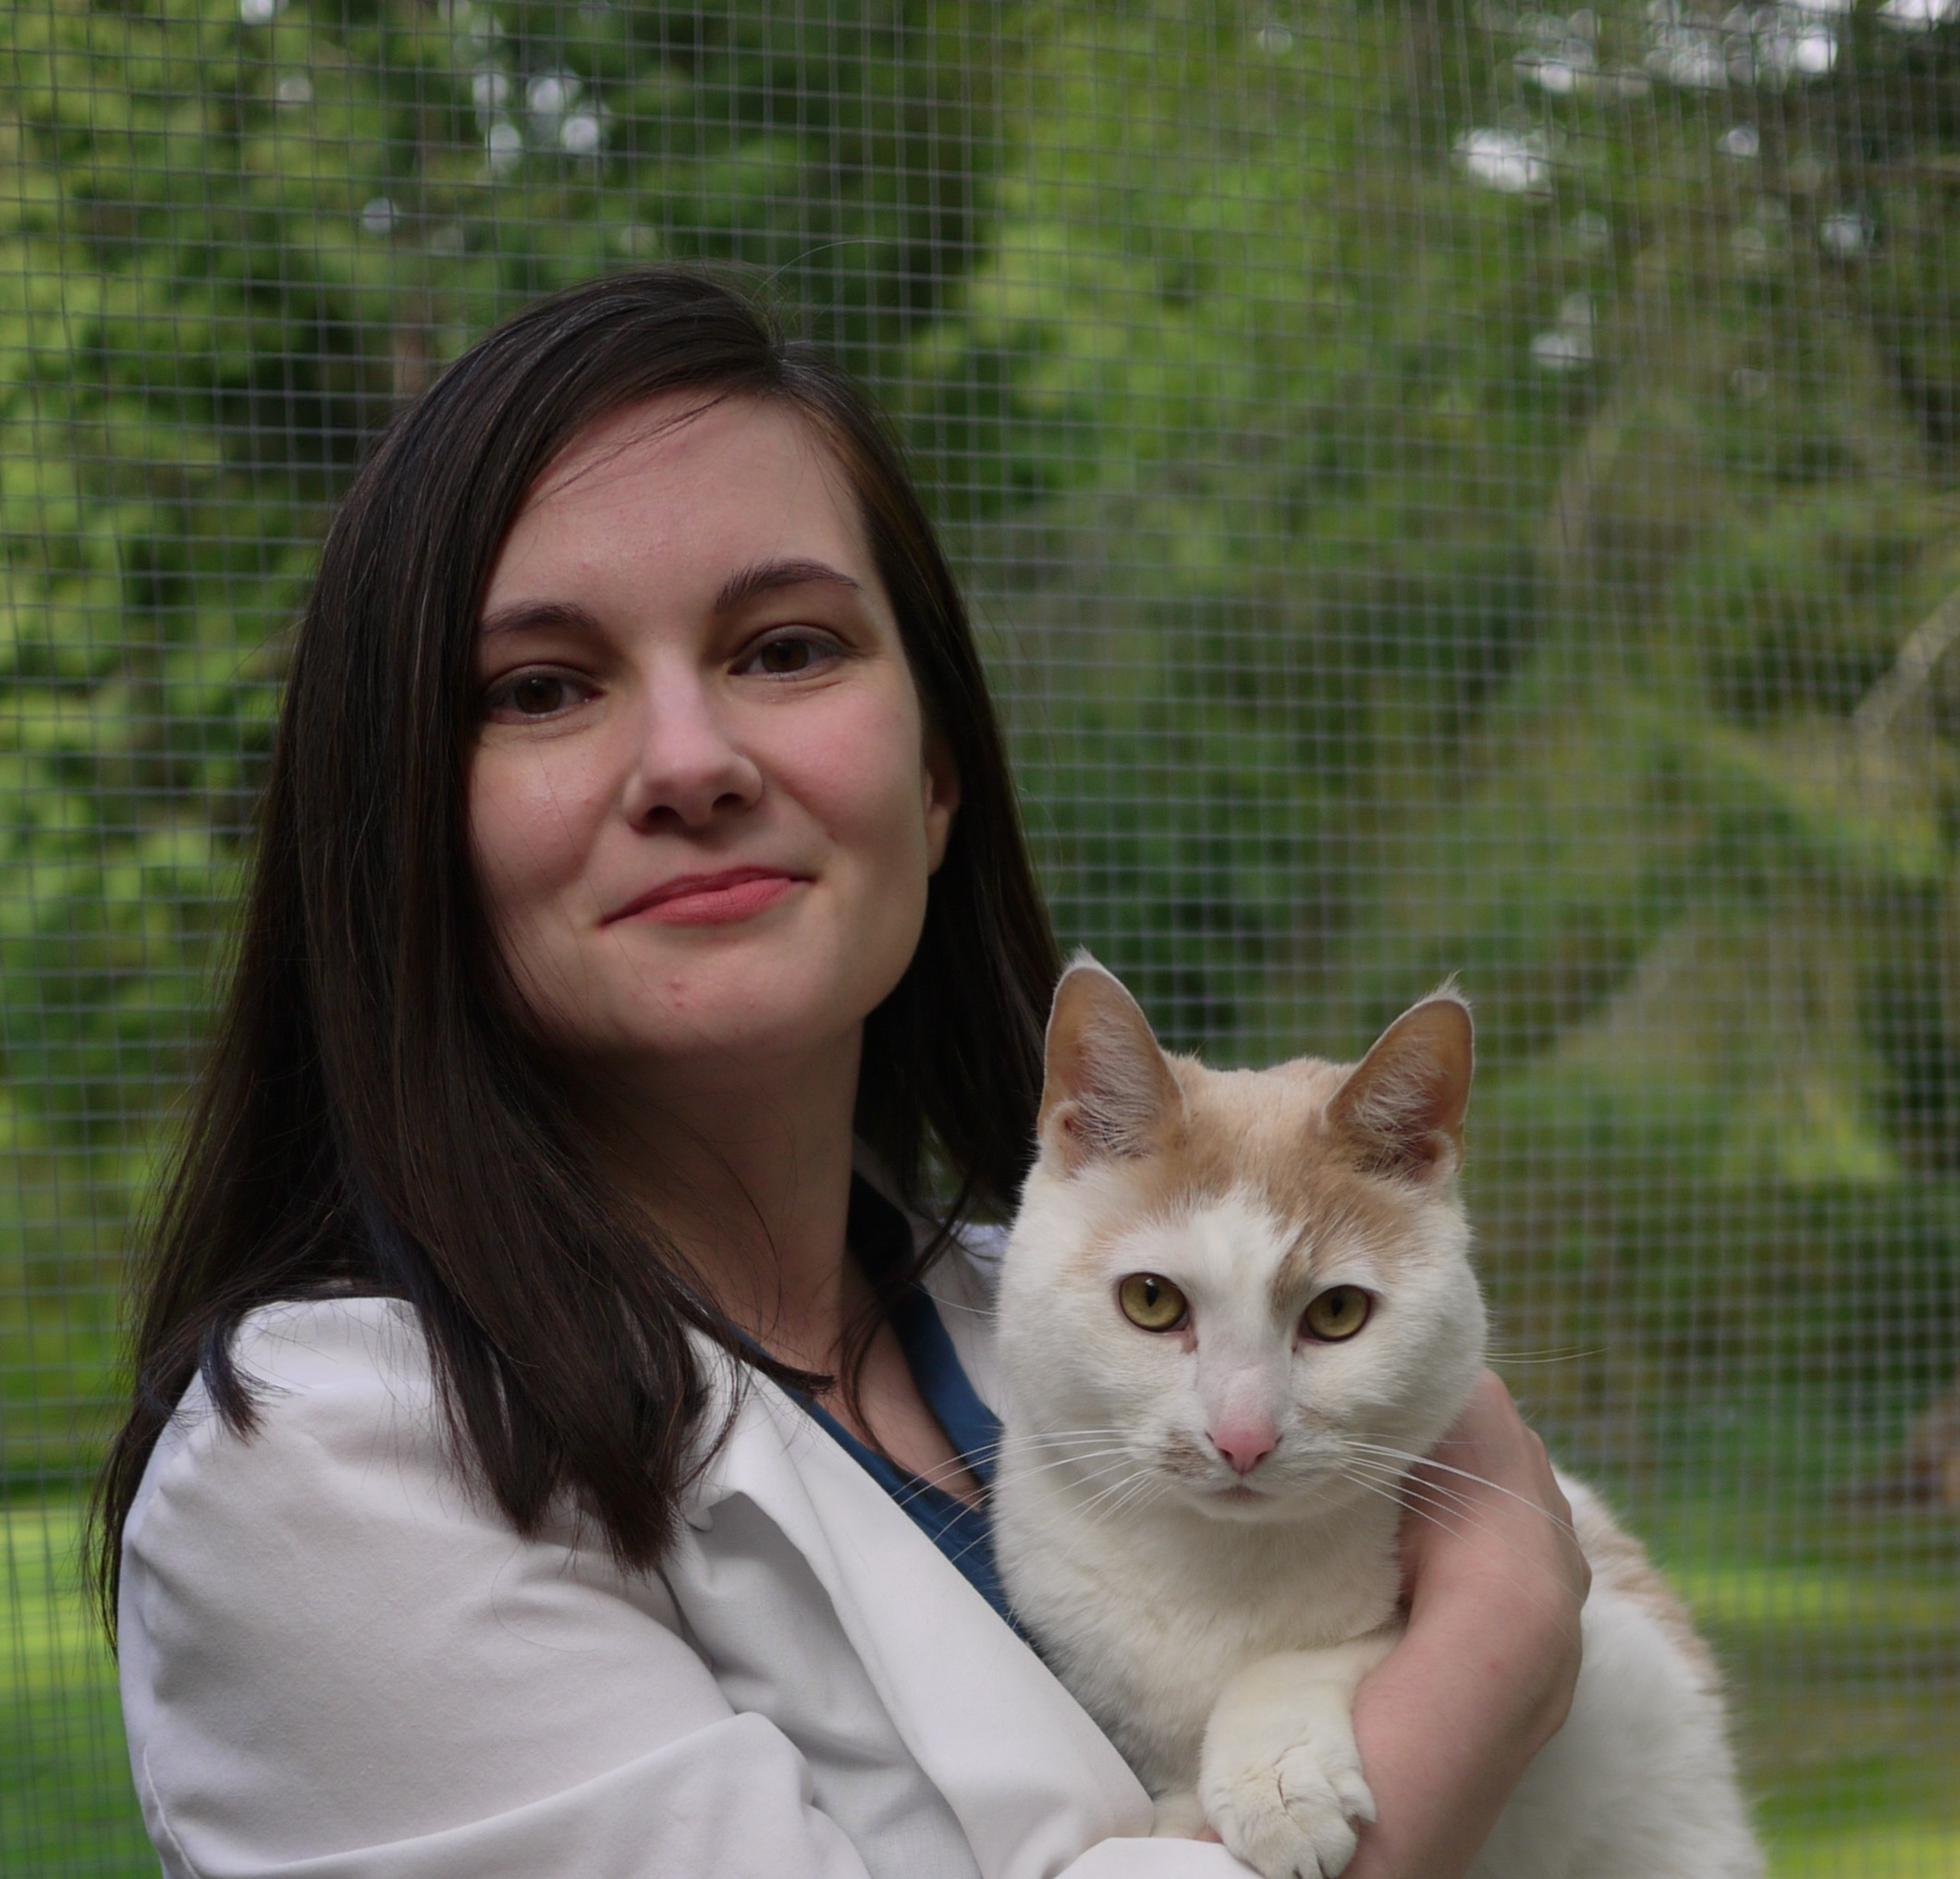 Warm welcome to Dr. Kristina Modjeski and her cat, Henry. She has been a long-time fan of Diamond and the exceptional care we provide to our clients and their pets.